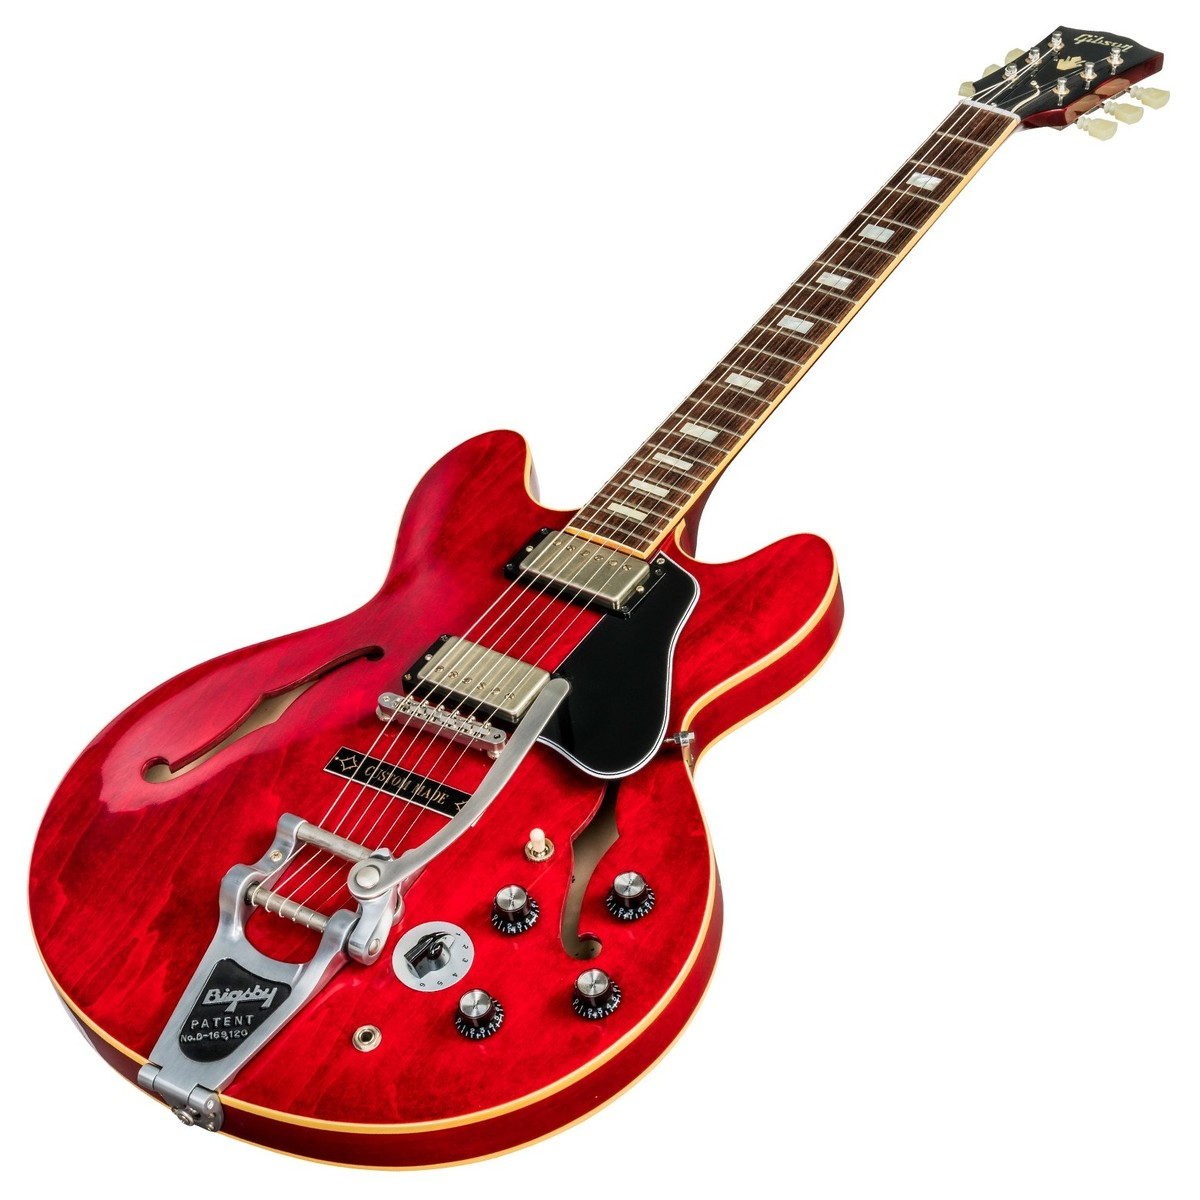 disc gibson es 335 39 63 bigsby 2018 sixties cherry at gear4music. Black Bedroom Furniture Sets. Home Design Ideas